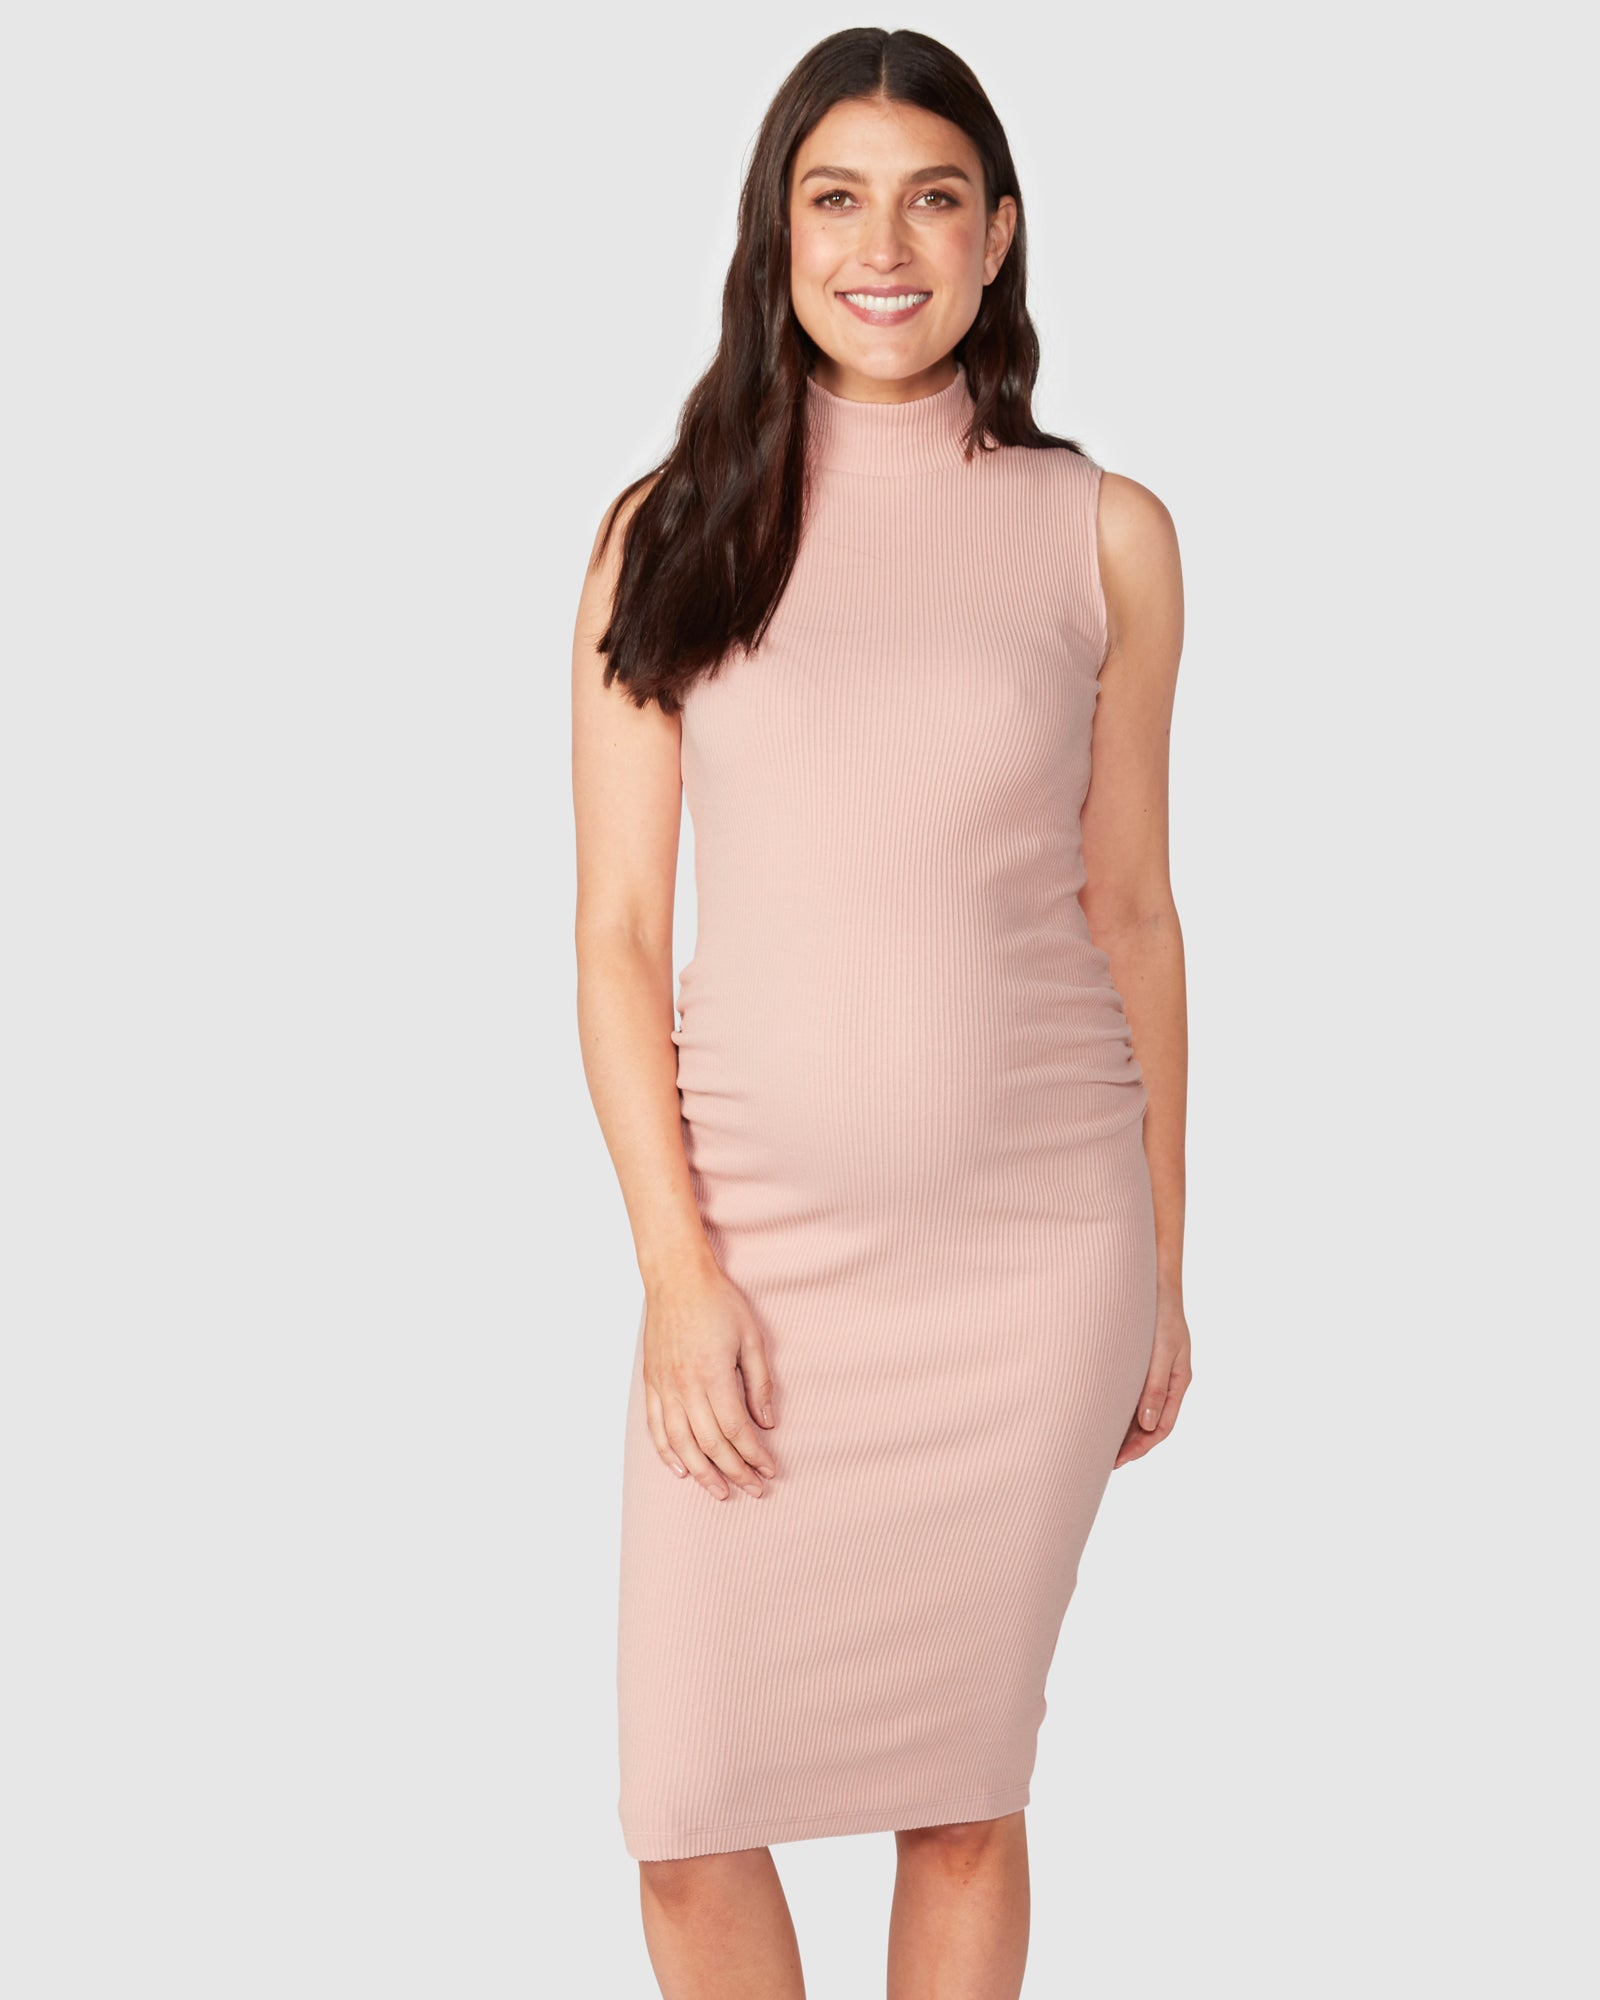 Audrey Sleeveless Rib Dress